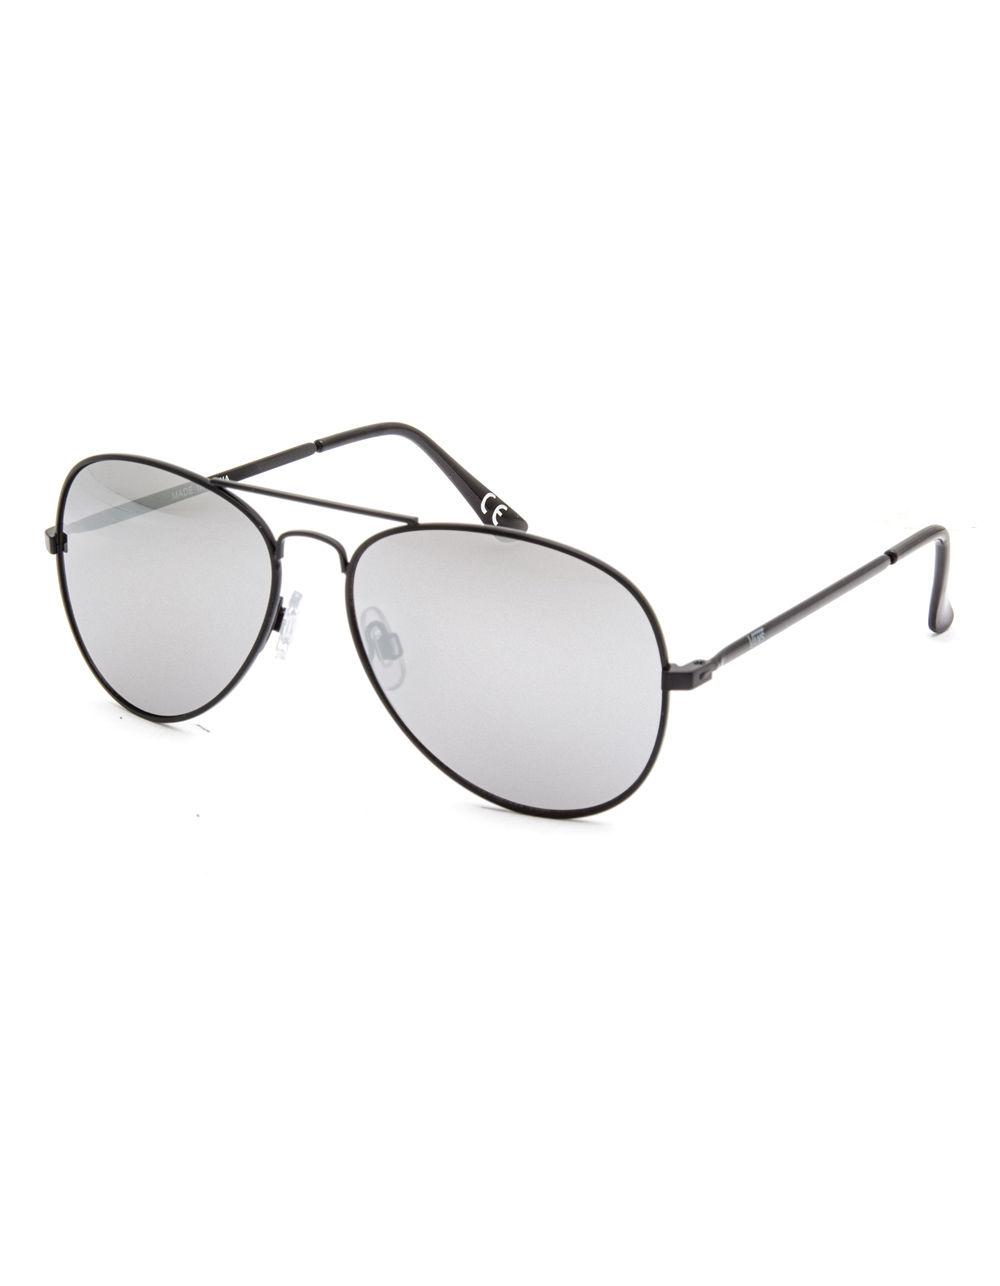 45d3c84890 Vans - Metallic Fly South Aviator Sunglasses for Men - Lyst. View fullscreen